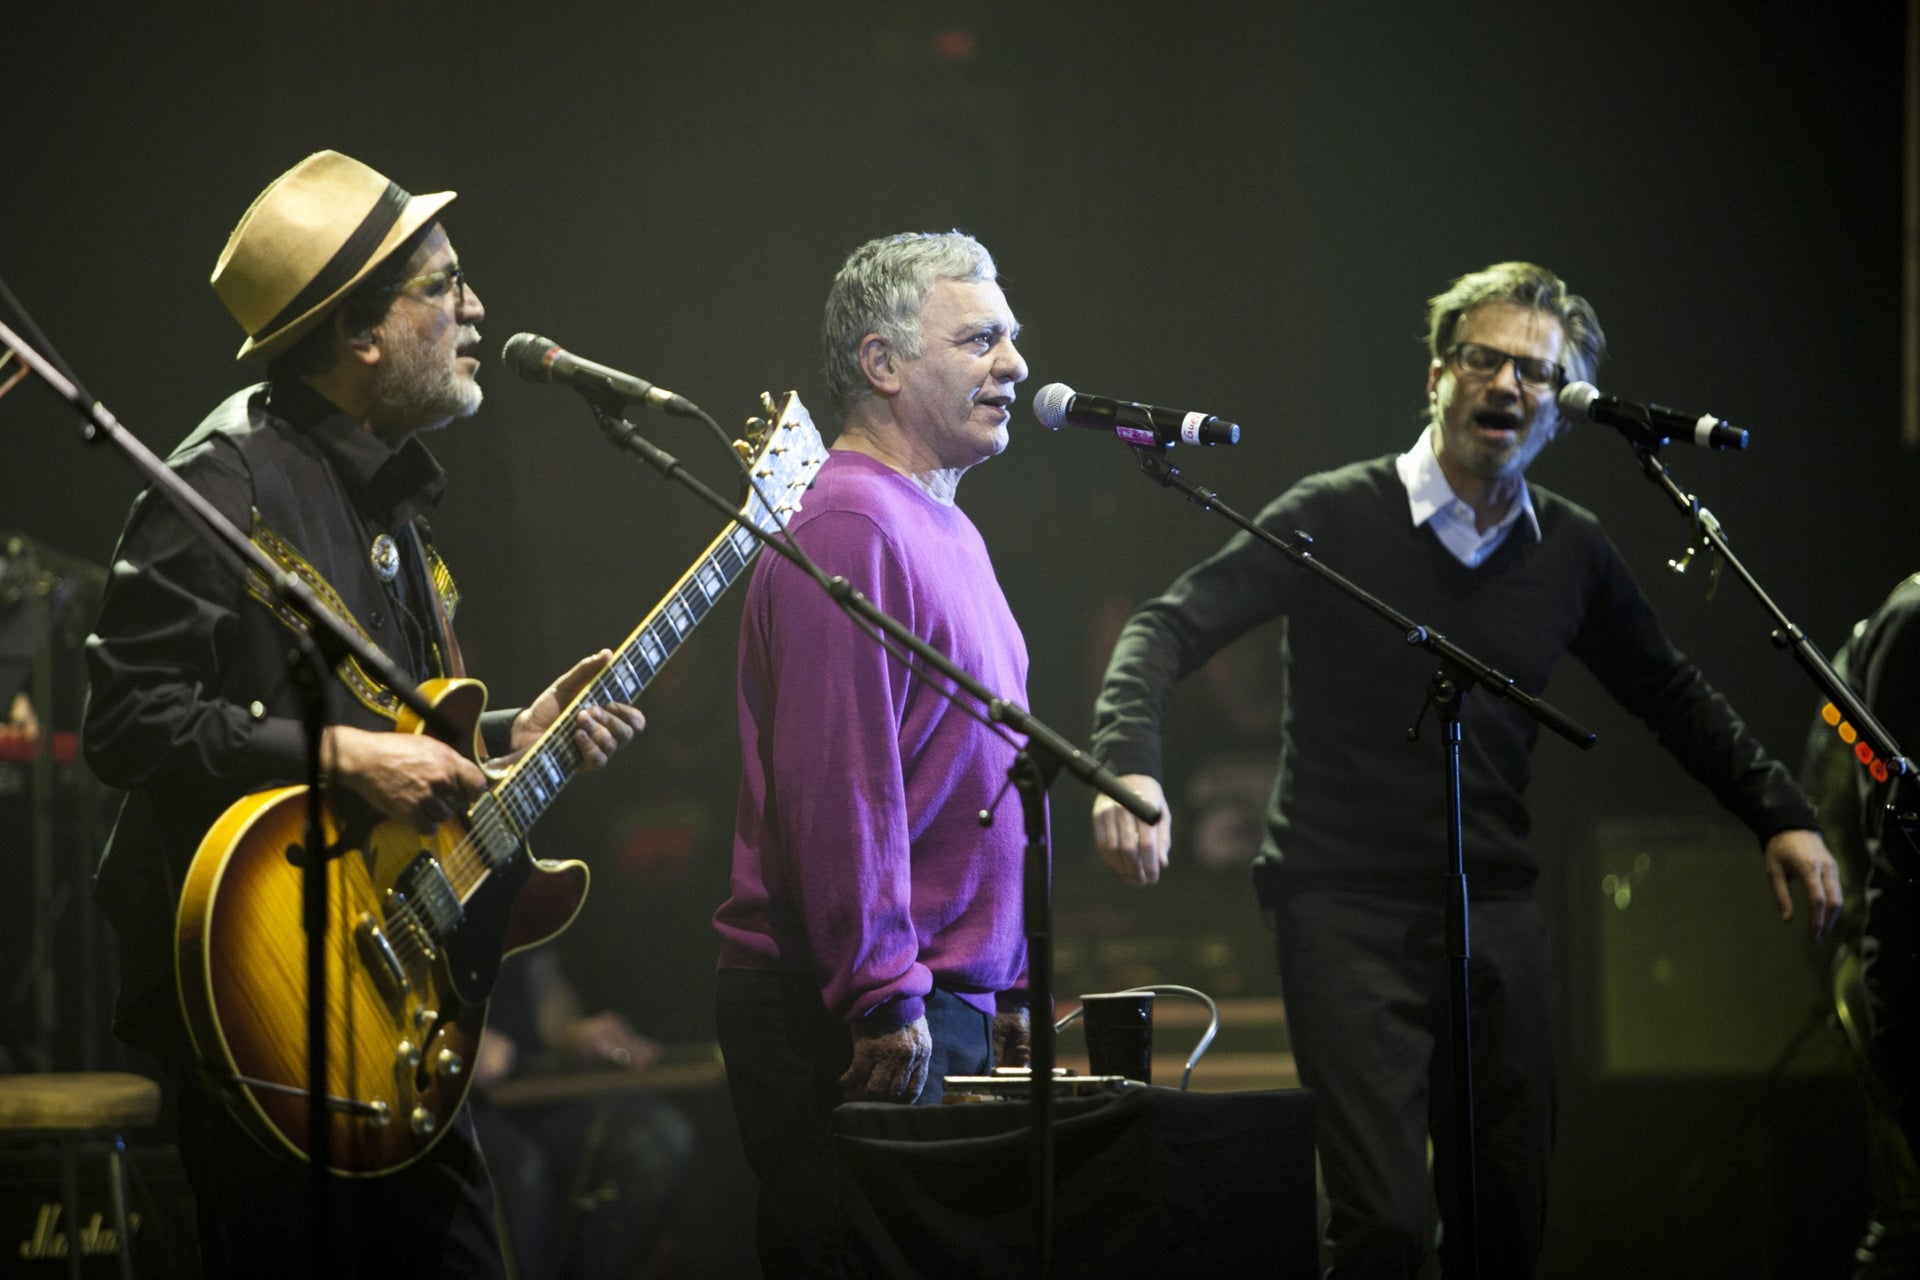 """Ehud, Gavri and Yuval Banai performing together in Tel Aviv in 2015.The Banai family is being showcased in an exhibition in the Tower of David in Jerusalem called """"Banai – A Musical Journey from Persia to Jerusalem,"""" July 2020."""